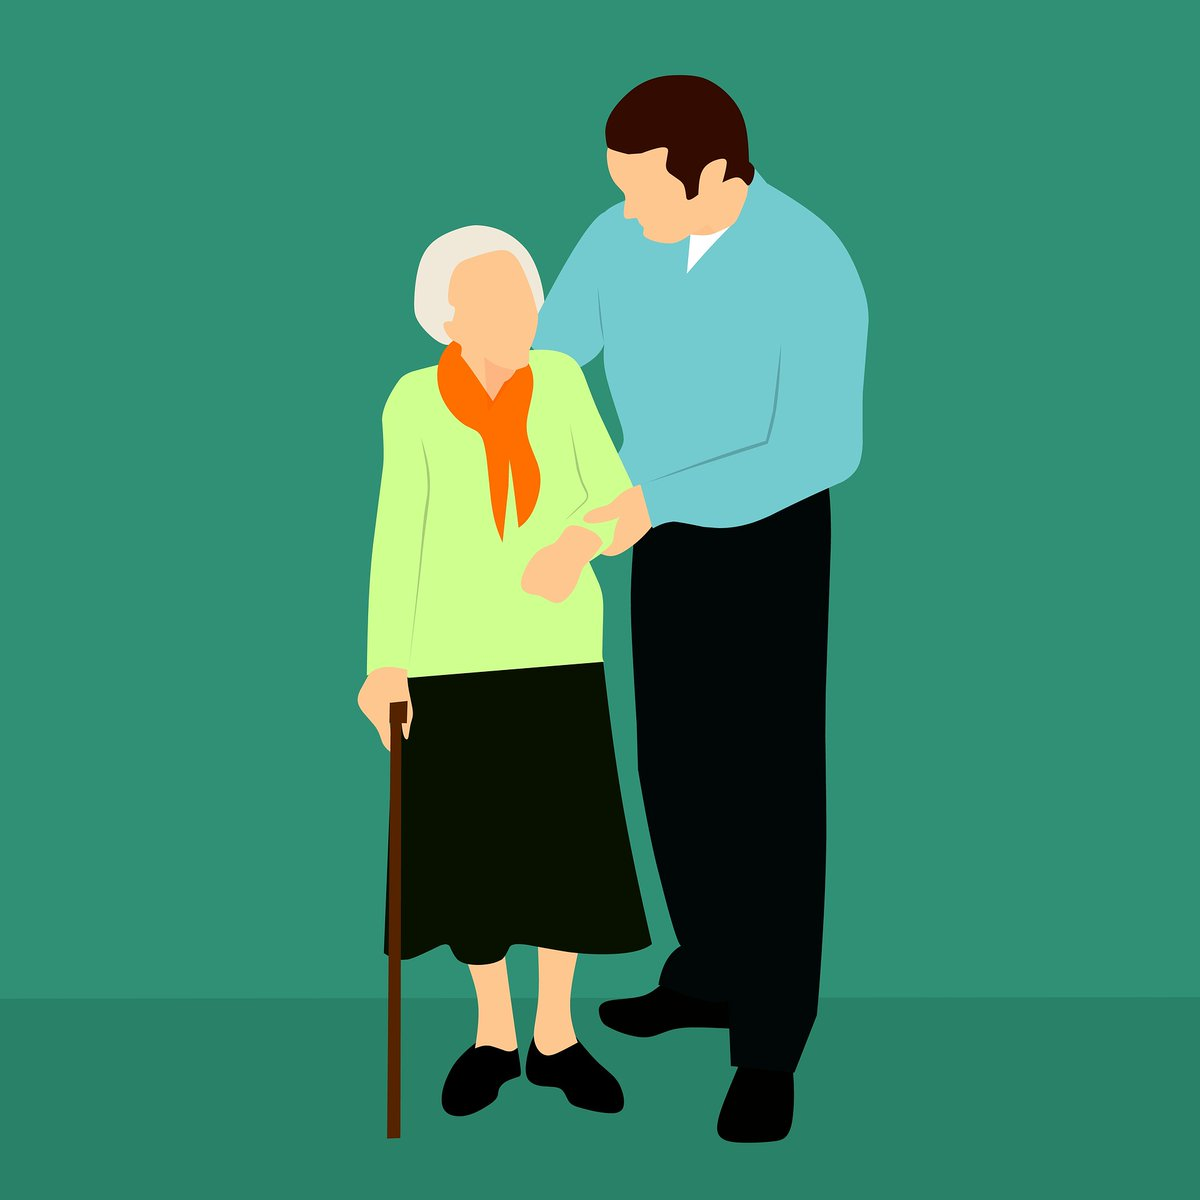 Need on-site COVID-19 testing for visitors or employees at an elder care facility? KSL has you covered with PCR and Rapid Tests! Our skilled team sets up onsite, administers tests, and provides detailed results with fast results. Visit us at [https://t.co/JvEq7VC5uA] https://t.co/QKoEjGpXxd